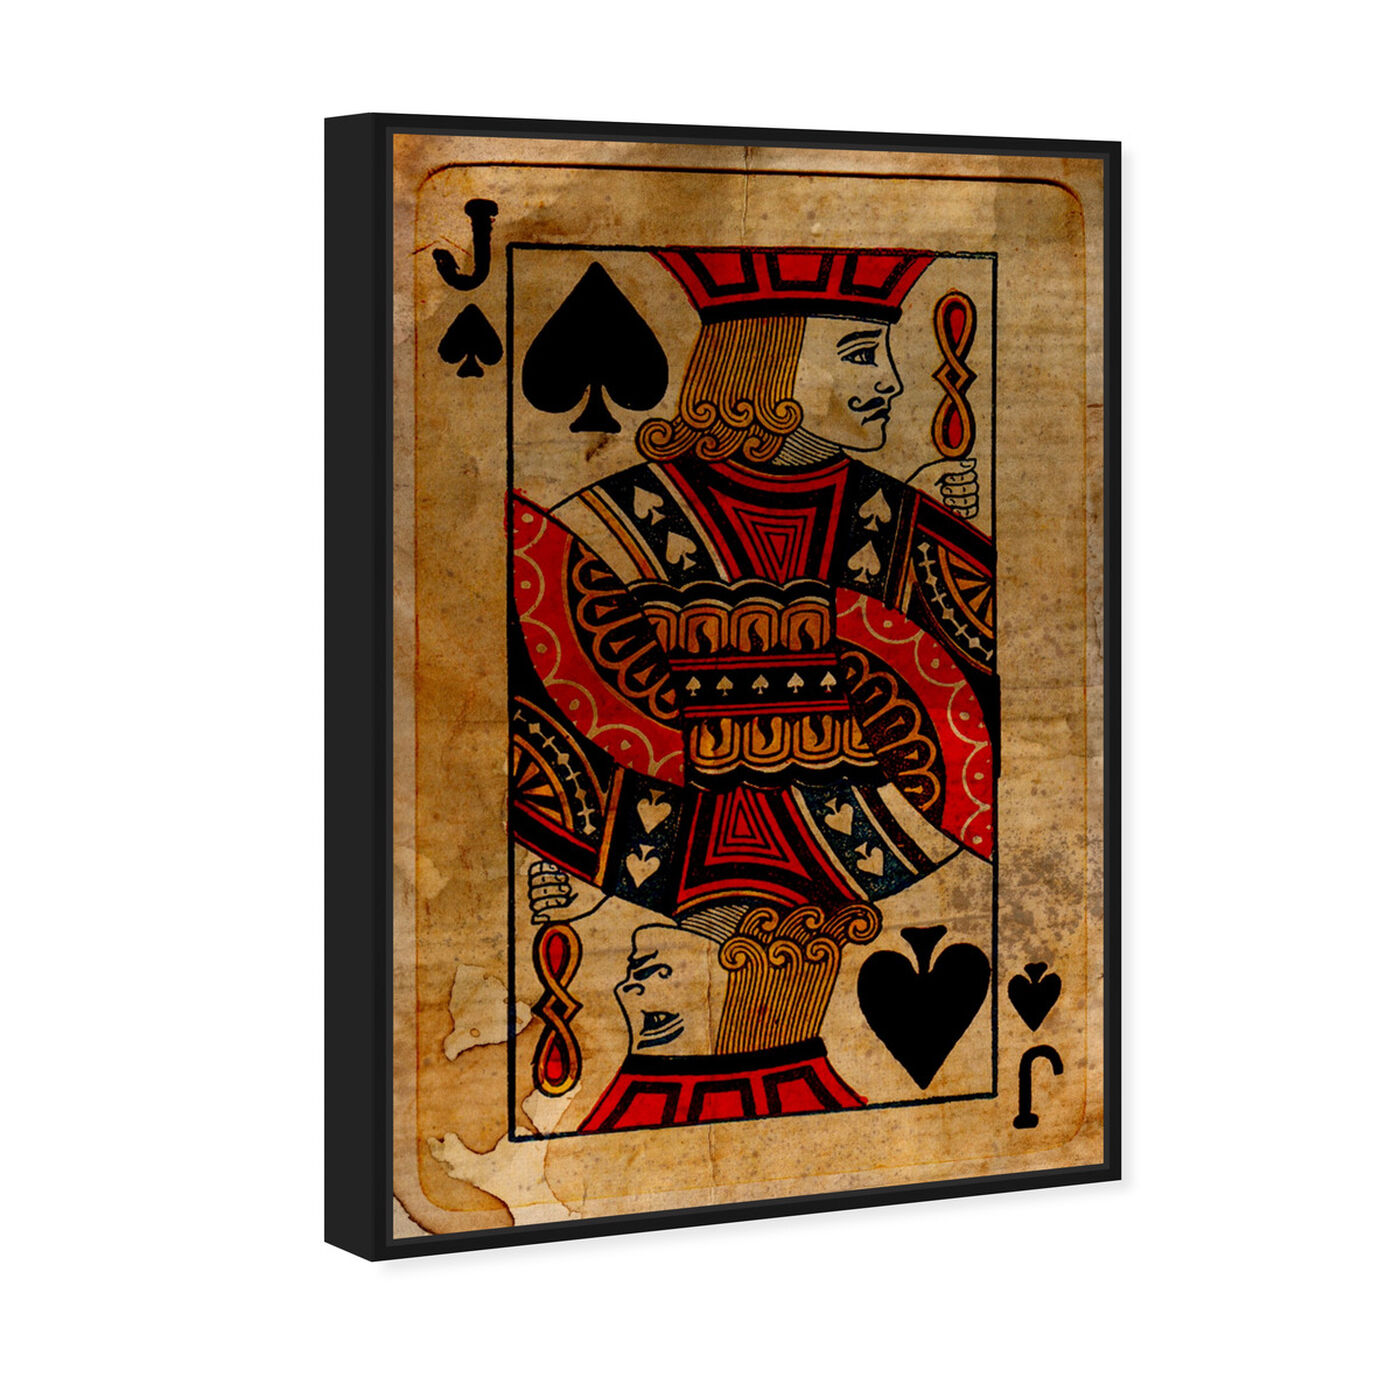 Angled view of Jack of Spades featuring entertainment and hobbies and playing cards art.